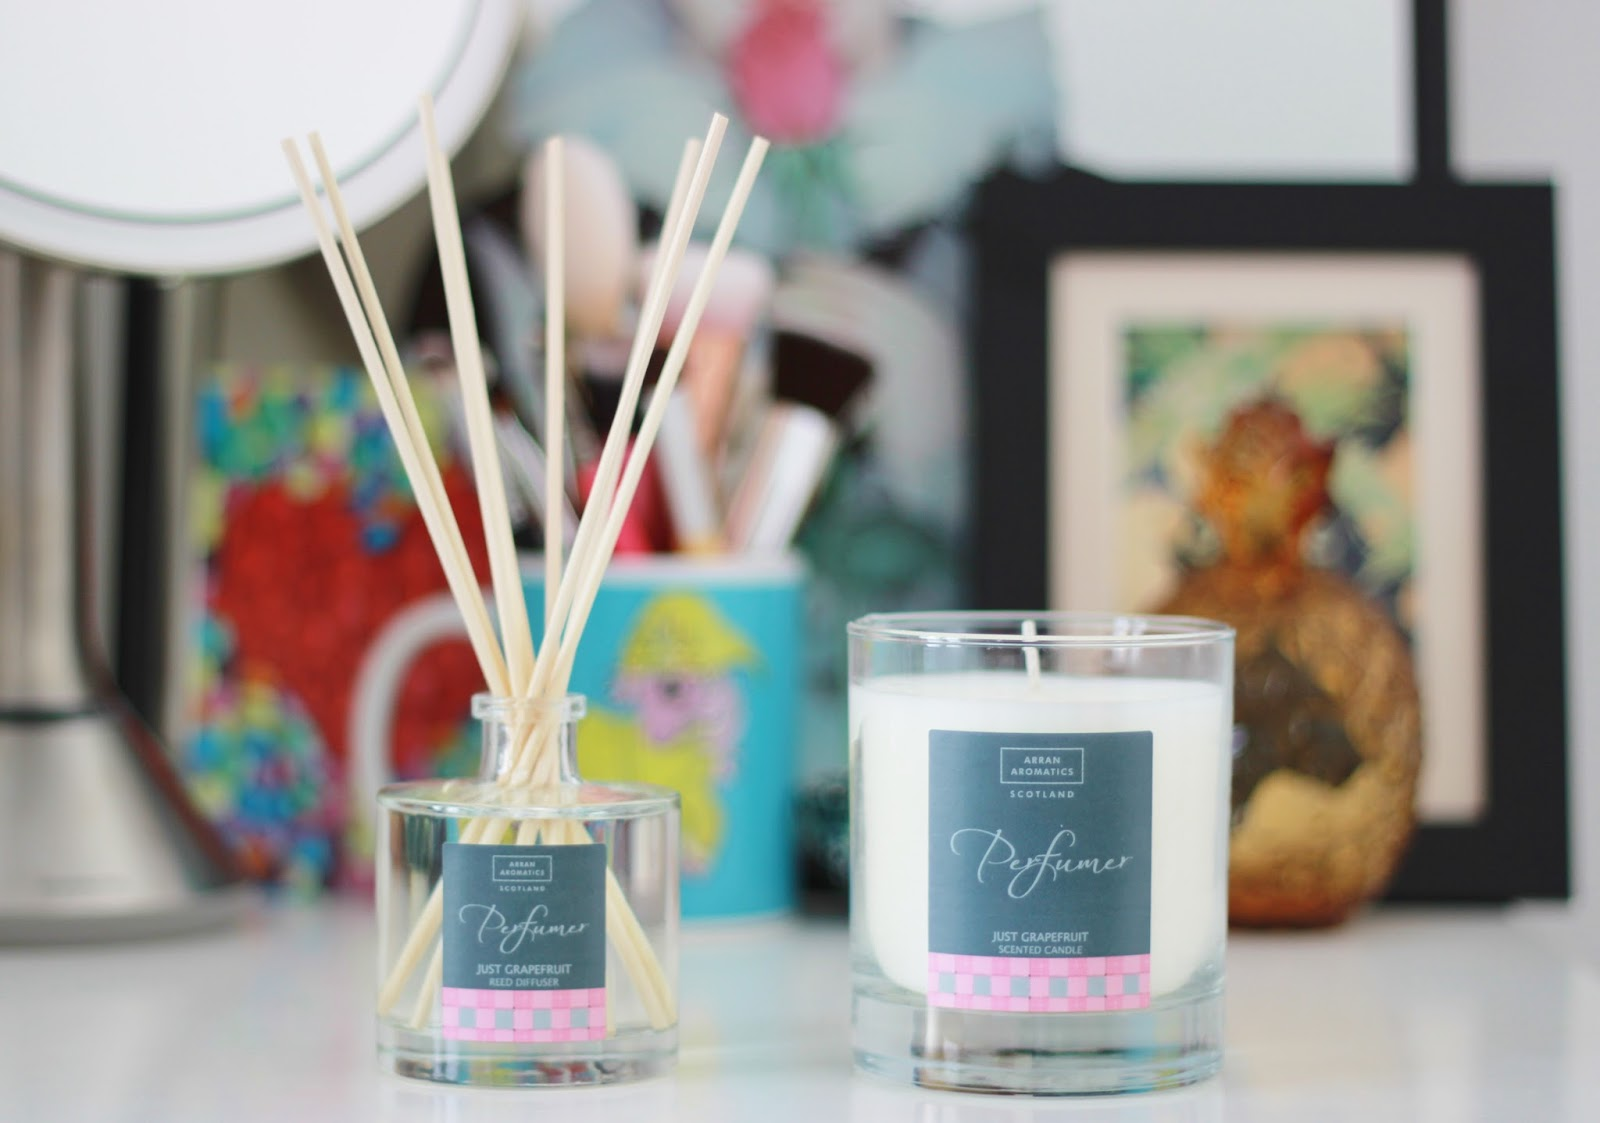 Arran Aromatics Just Grapefruit scented candle and reed diffuser